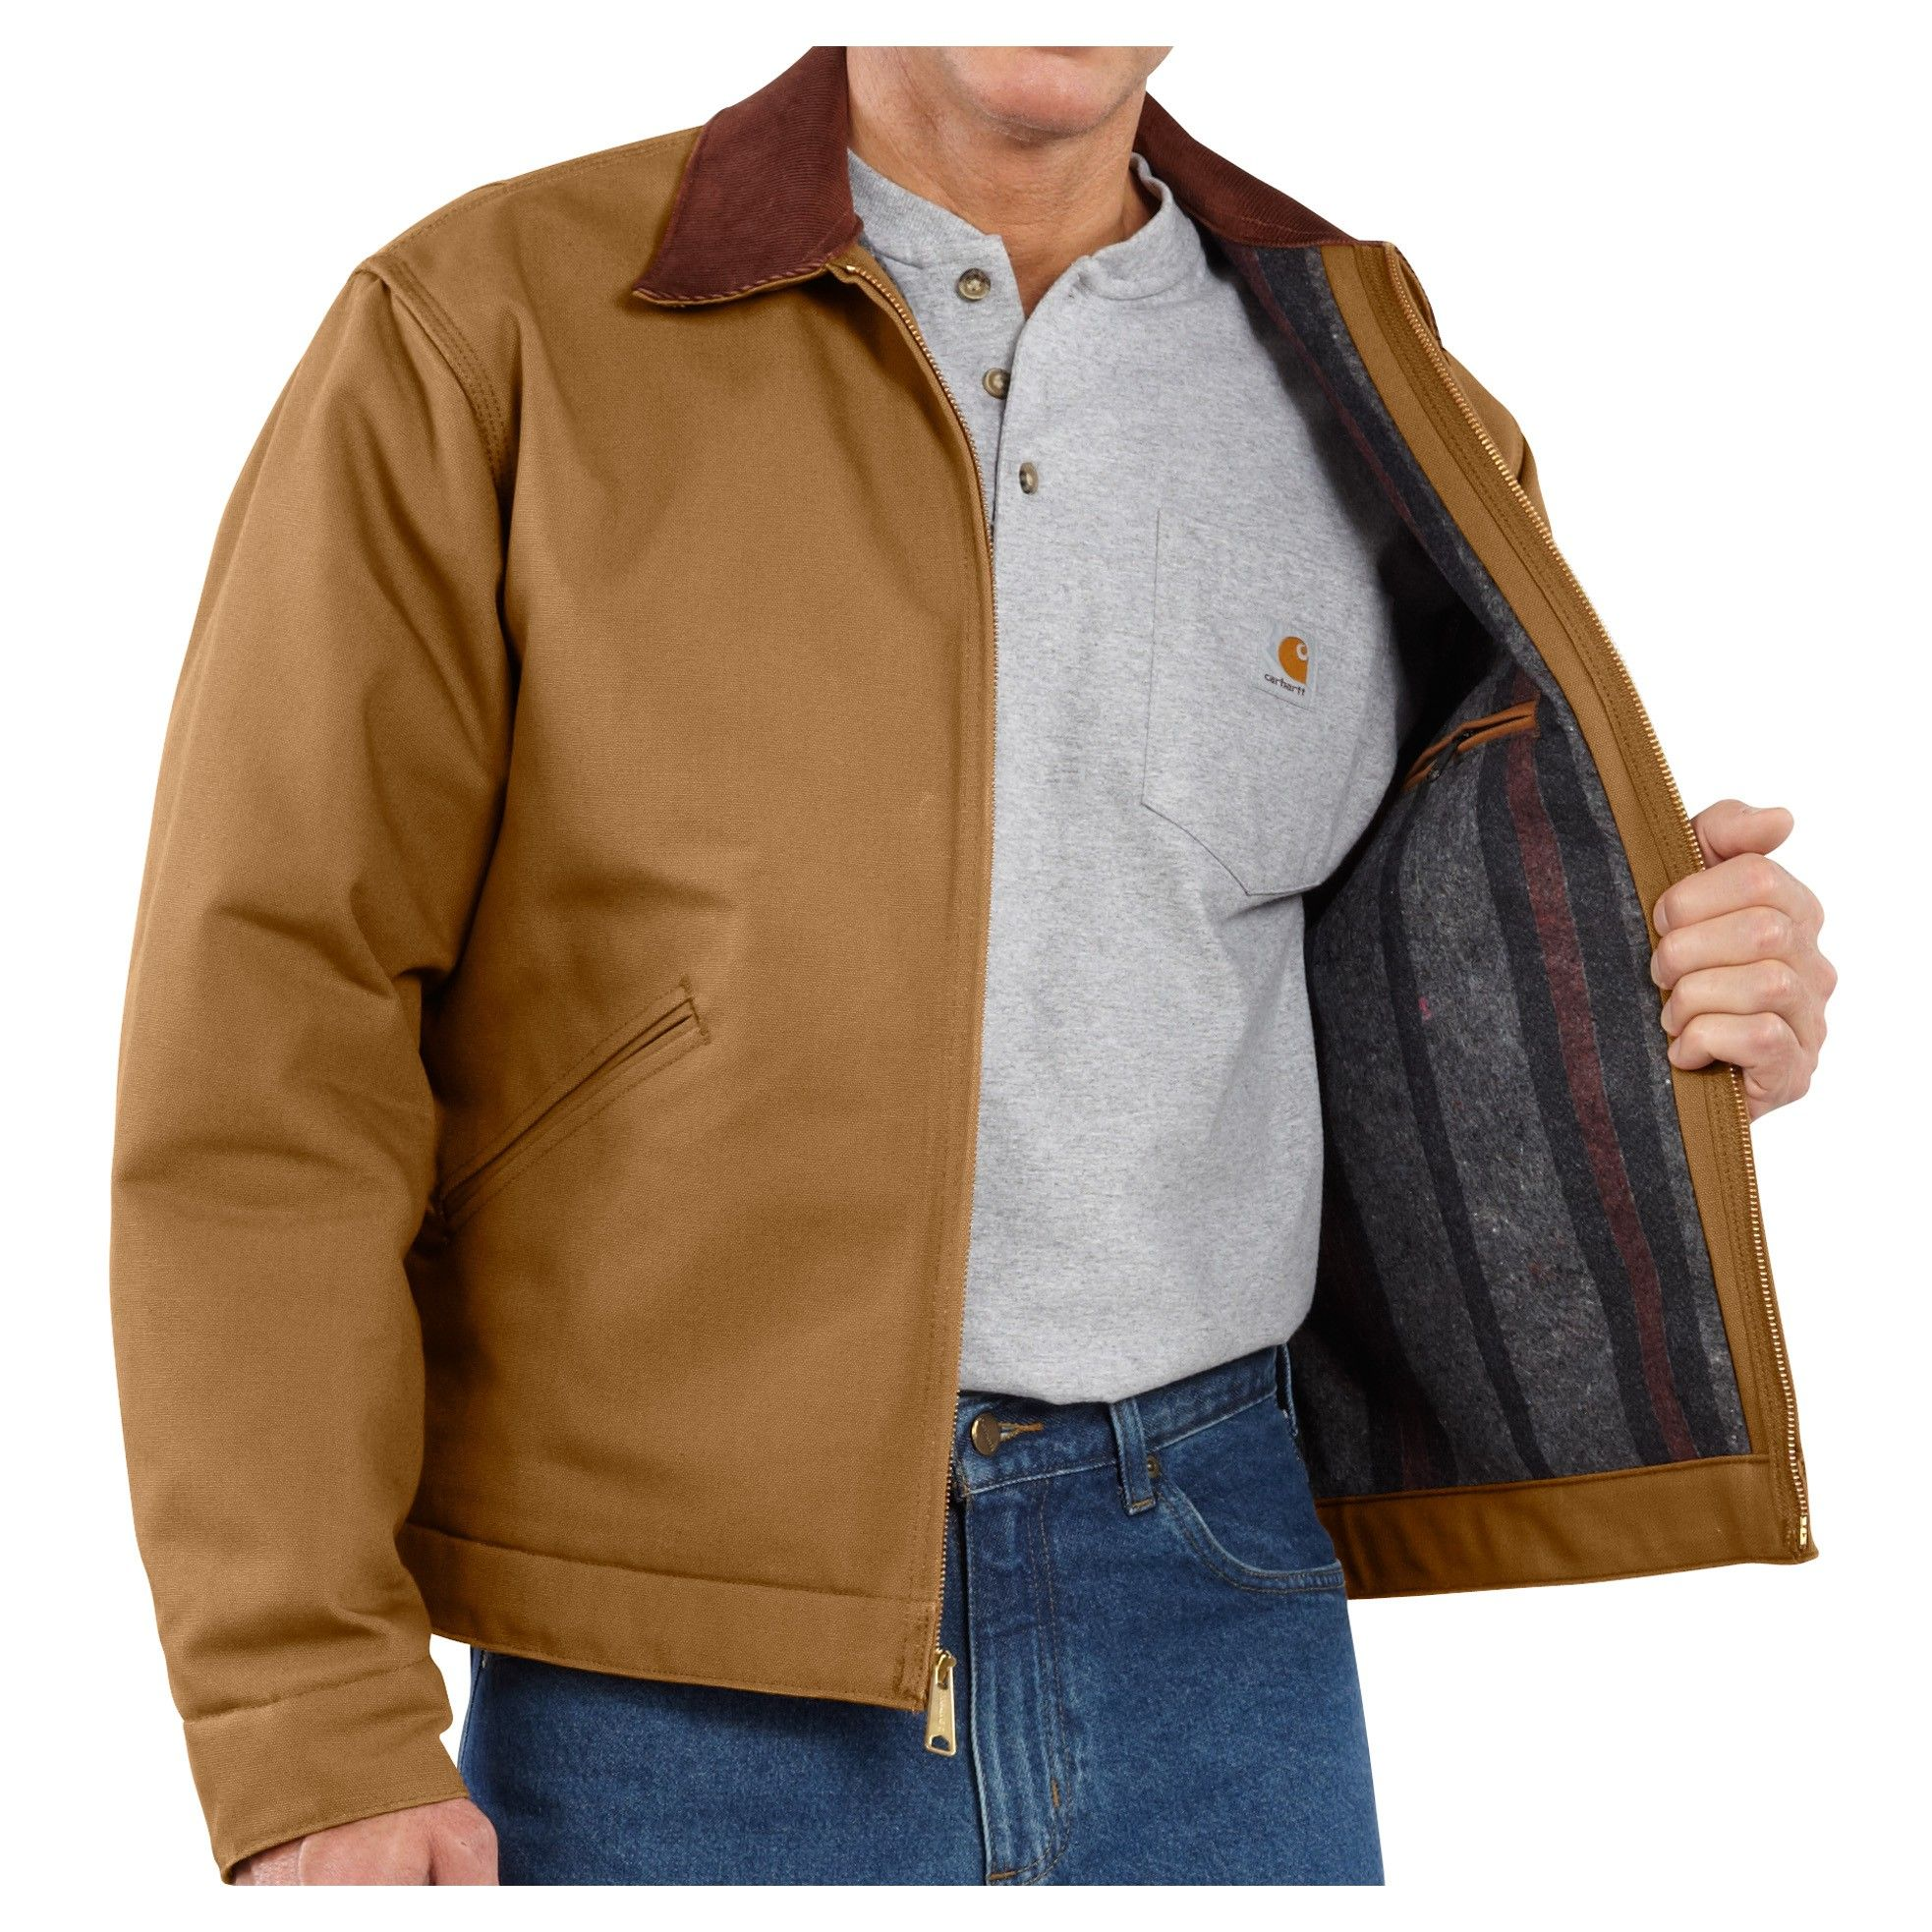 Carhartt Mens Duck Detroit Adjustable Duck Shell Jacket Coat